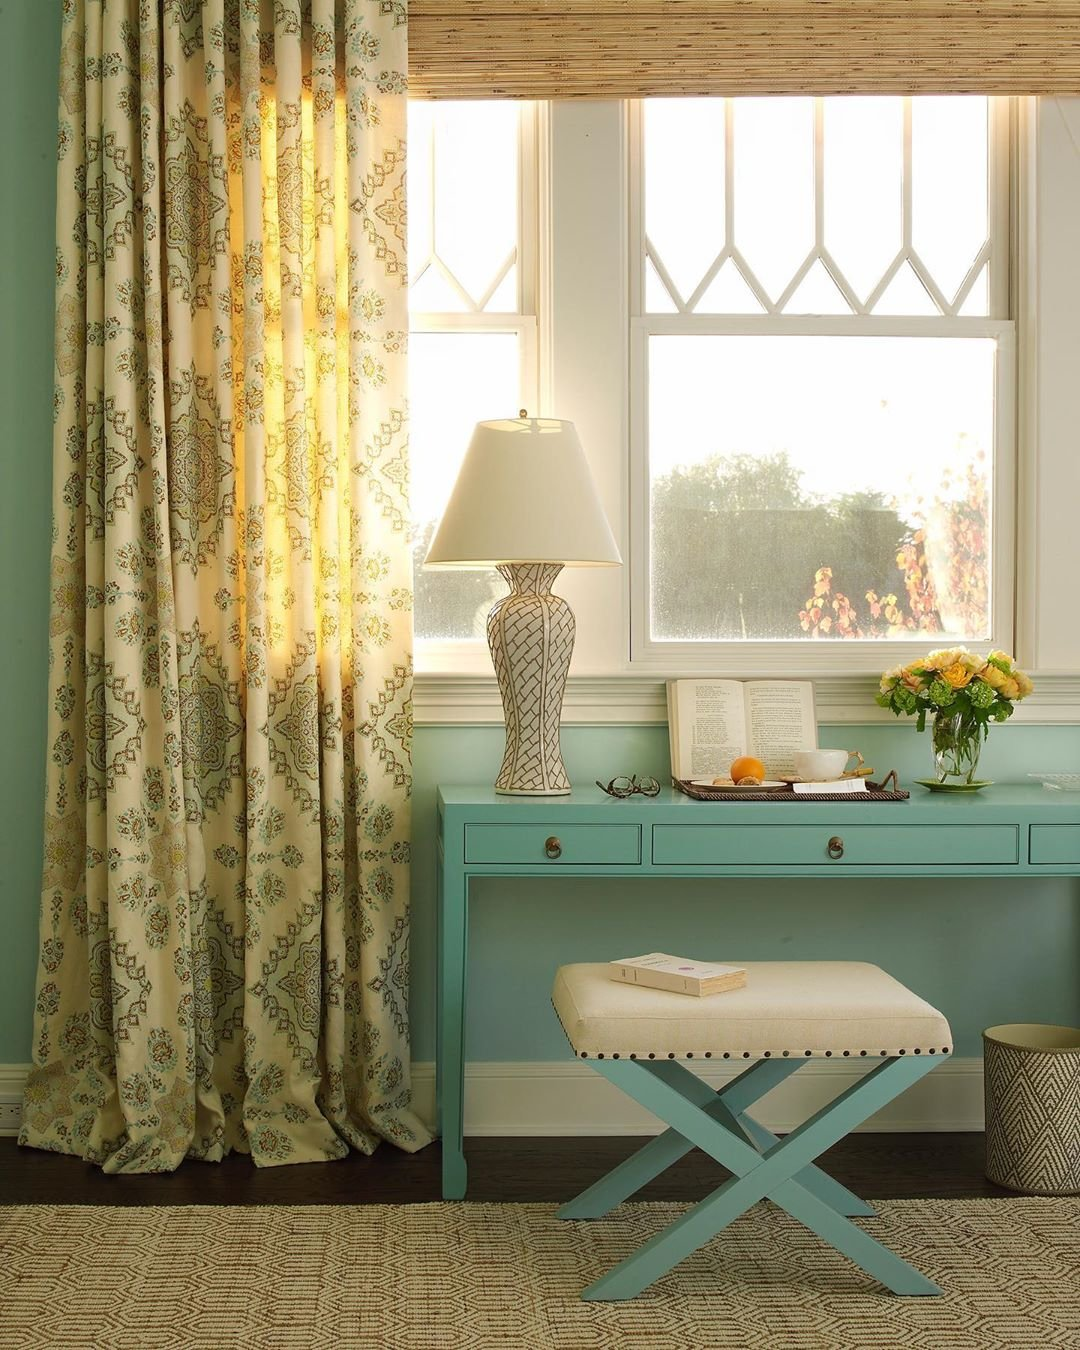 Quadrille Fabrics On Twitter Home Couture Persepolis Curtains By Meg Braff